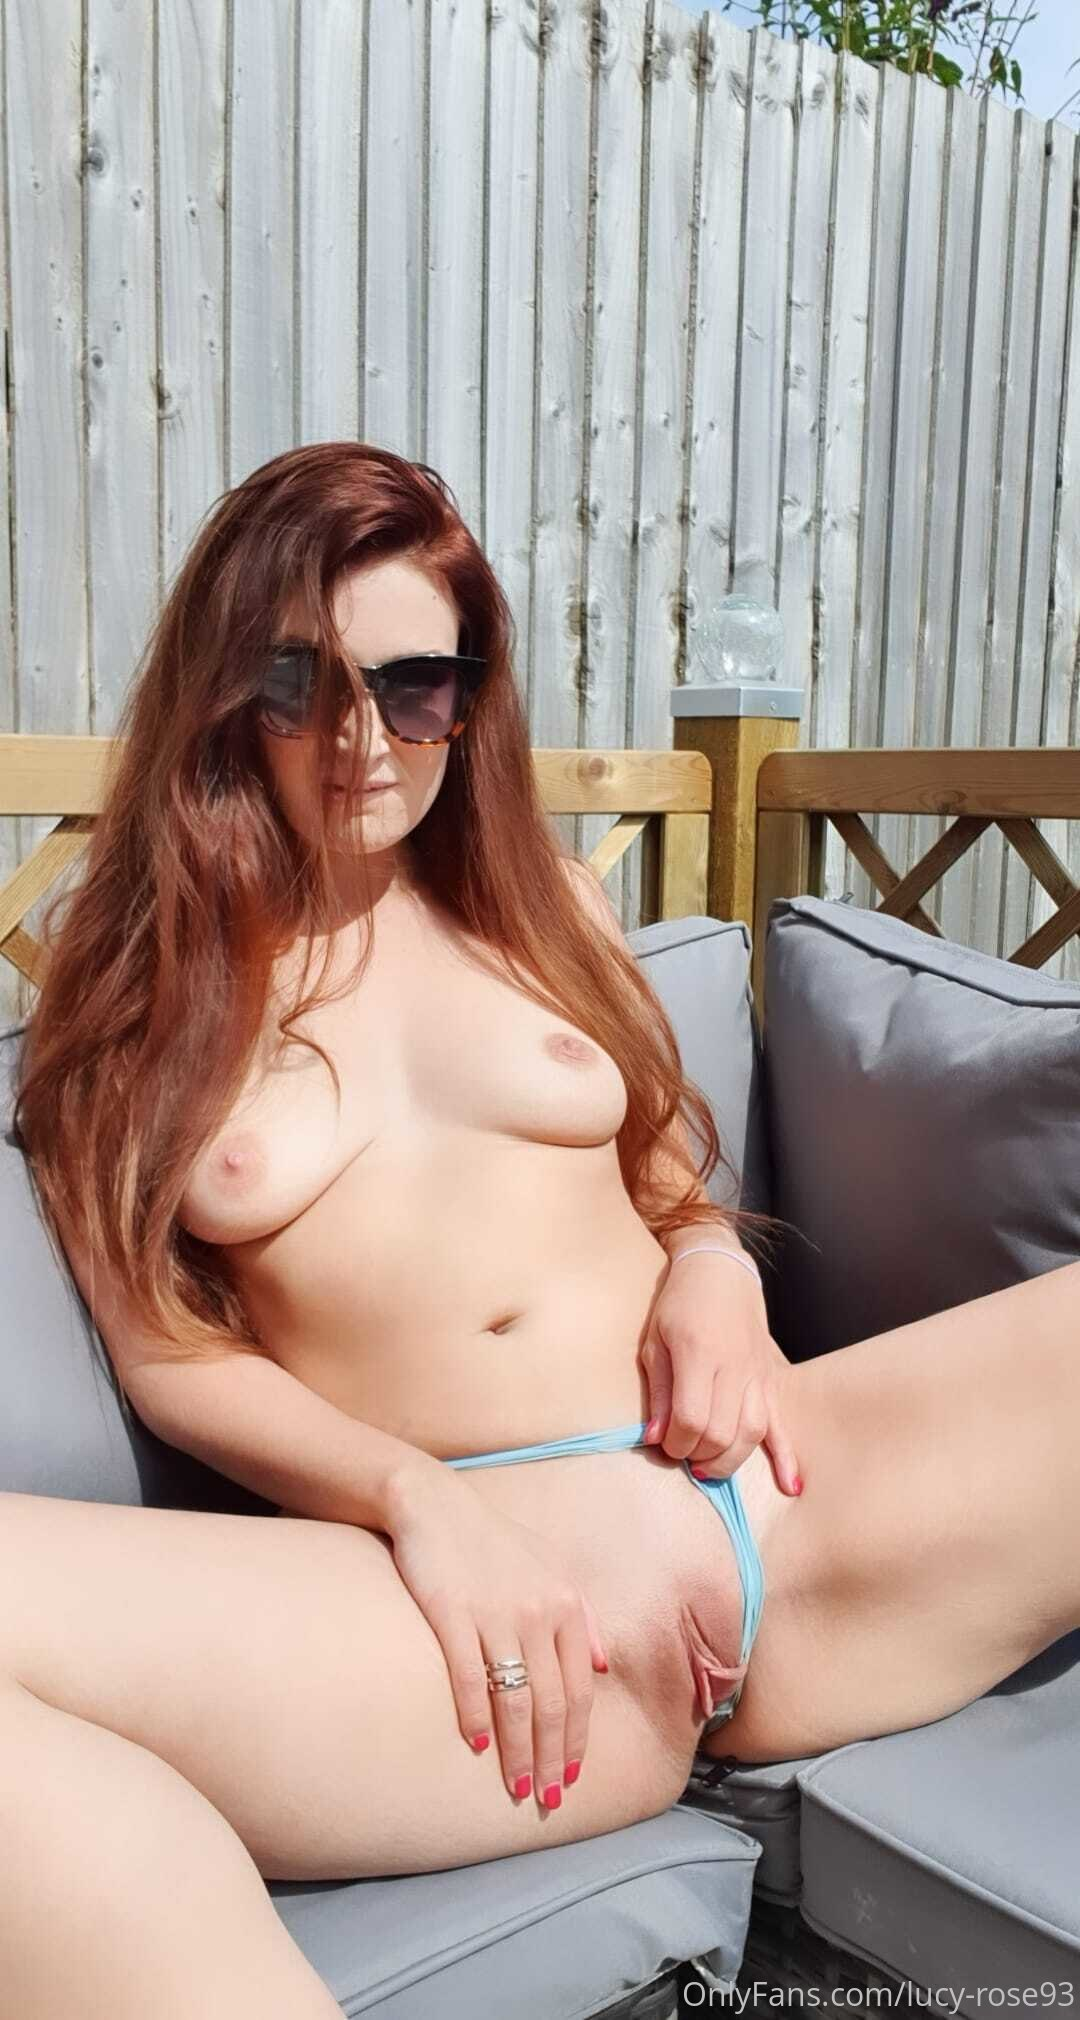 Lucy Rose, Lucy Rose93, Onlyfans 0031